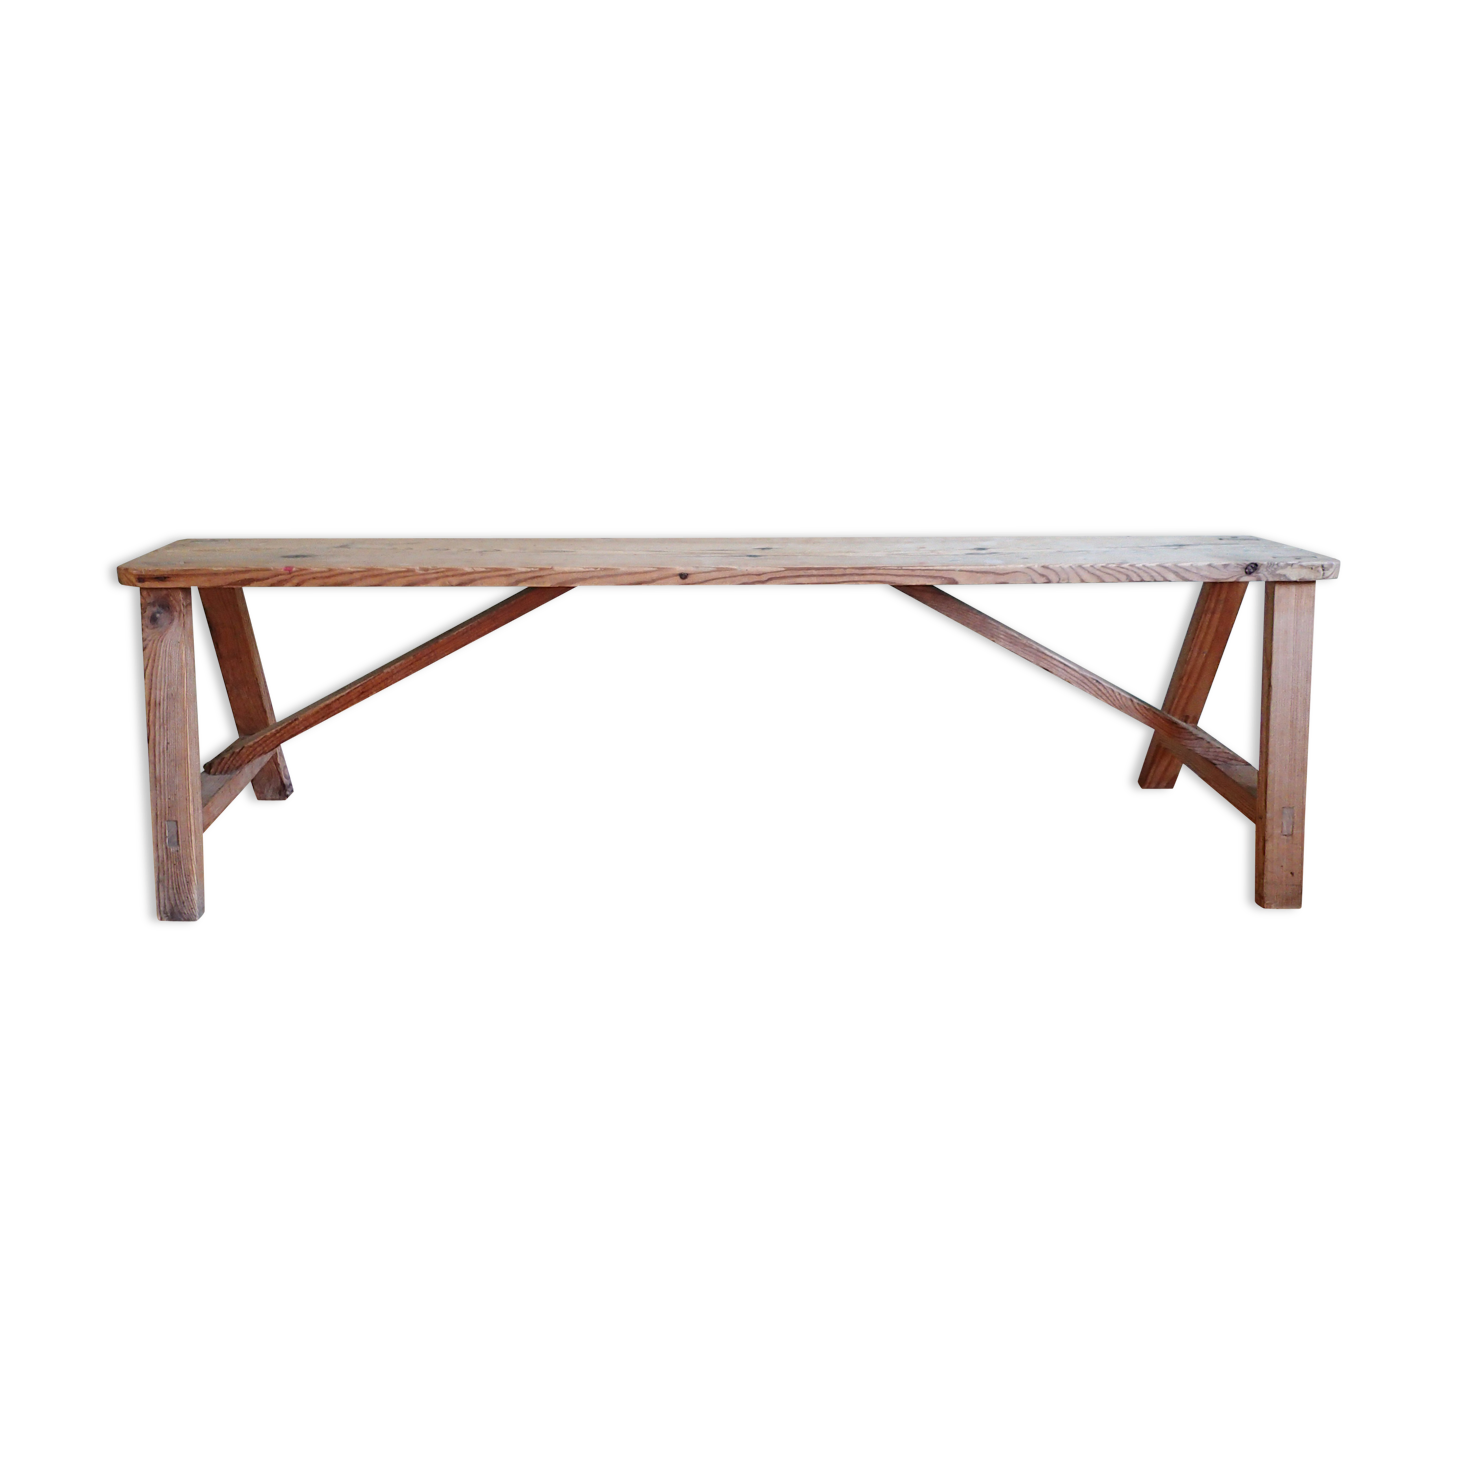 Old Wooden Farm Or School Bench